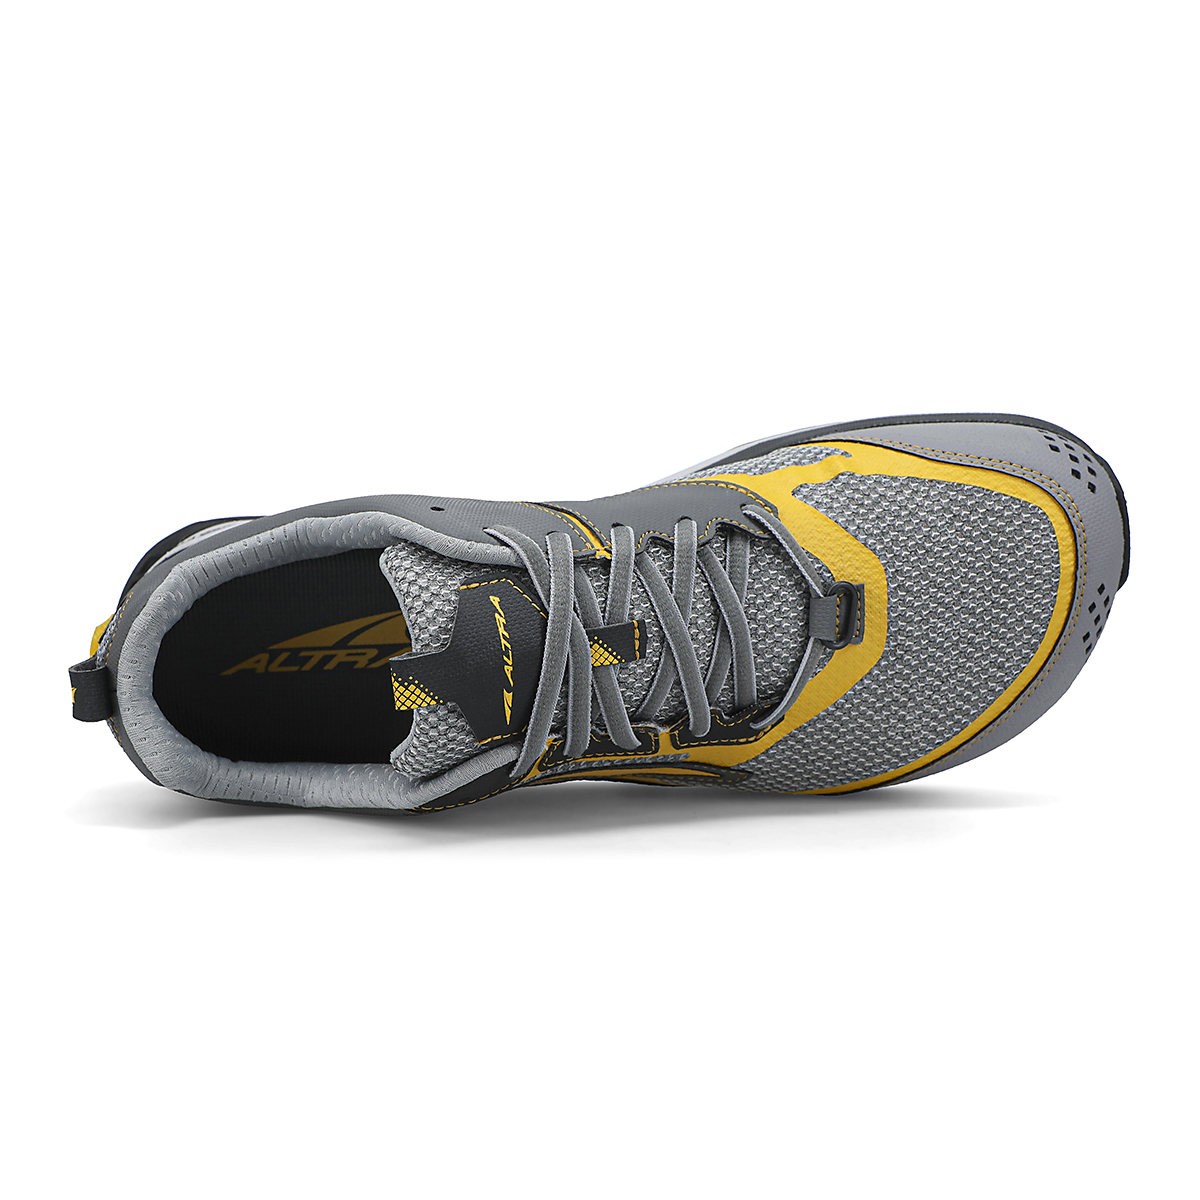 Men's Altra Lone Peak 5 10th Anniversary Special Edition Trail Running Shoe - Color: Gray/Yellow - Size: 8 - Width: Regular, Gray/Yellow, large, image 3